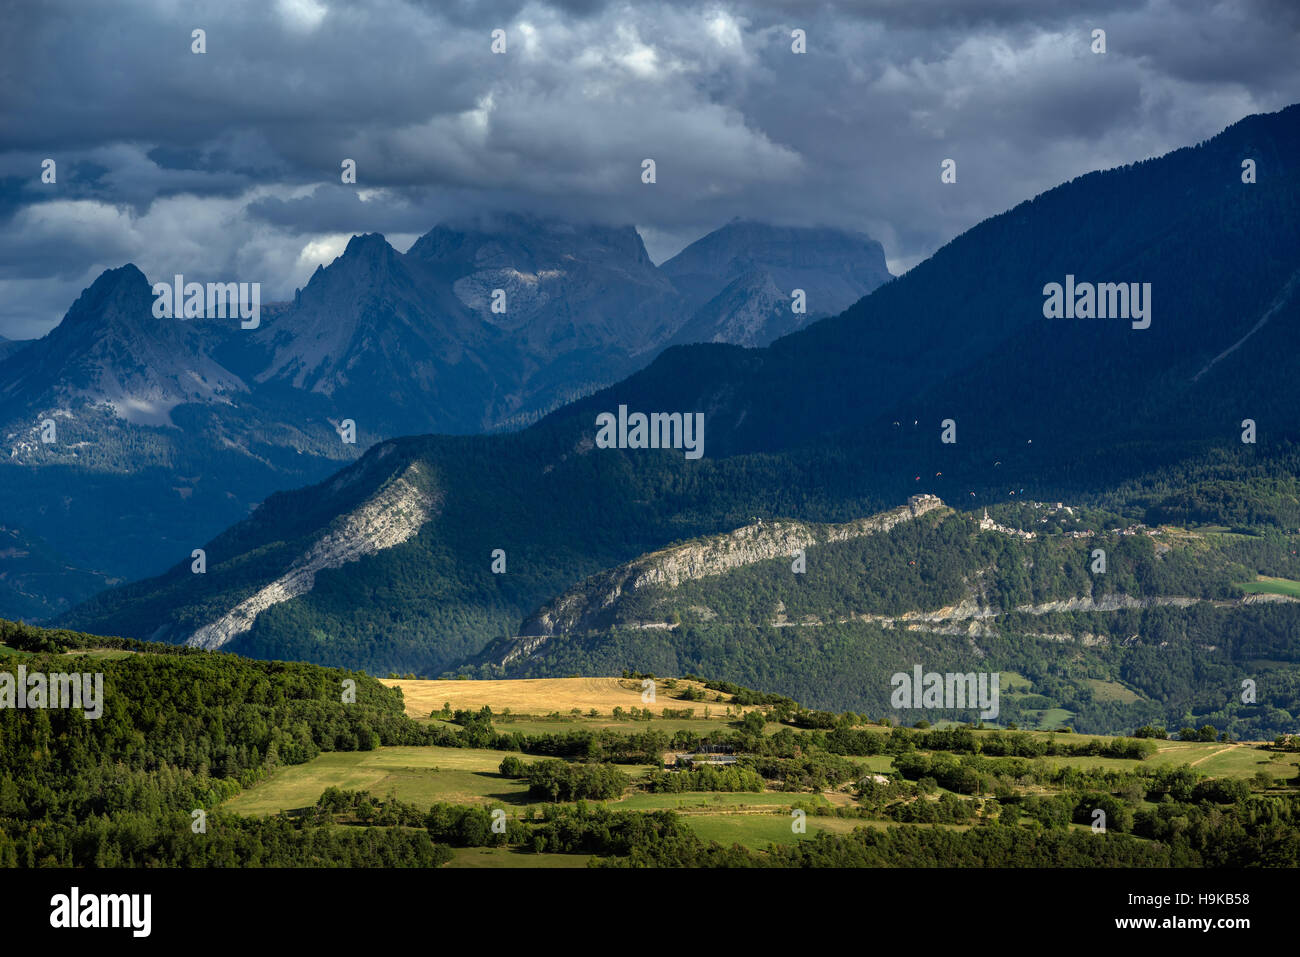 Paragliding above the village of Saint Vincent Les Forts with view on the Seolane Des Besses and Ailette mountains. - Stock Image